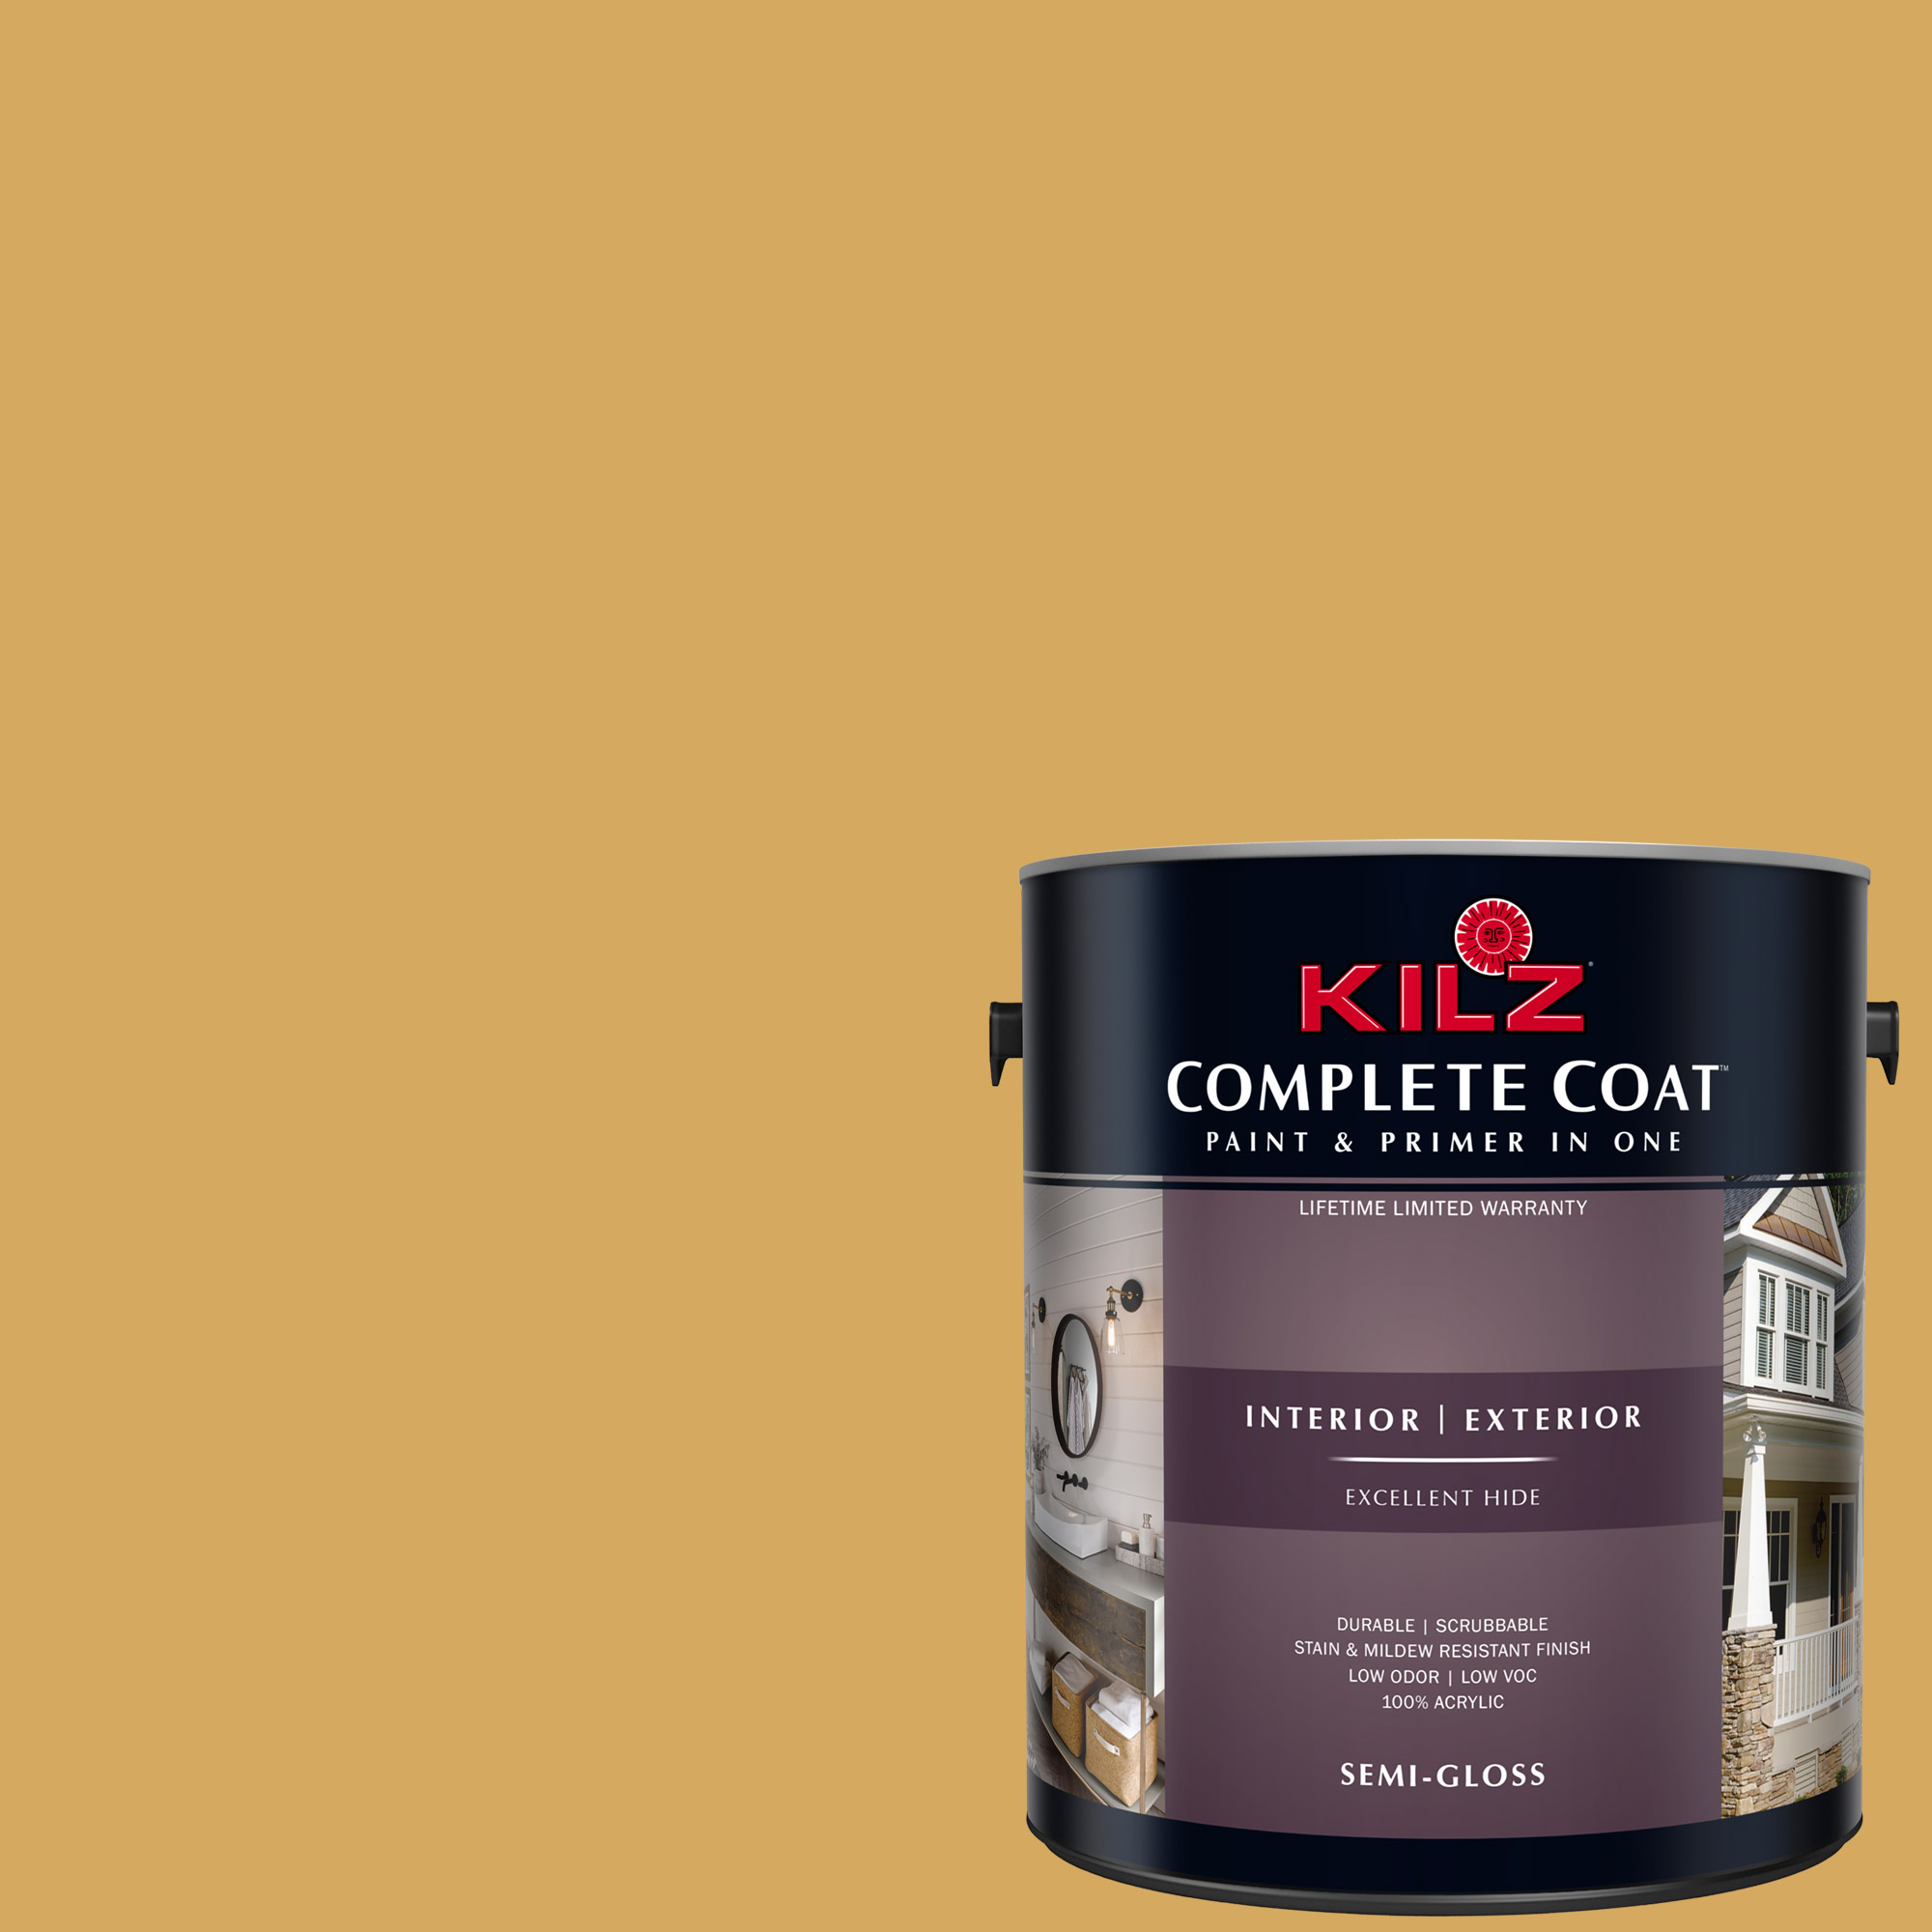 KILZ COMPLETE COAT Interior/Exterior Paint & Primer in One #LE110-01 Heart of Gold